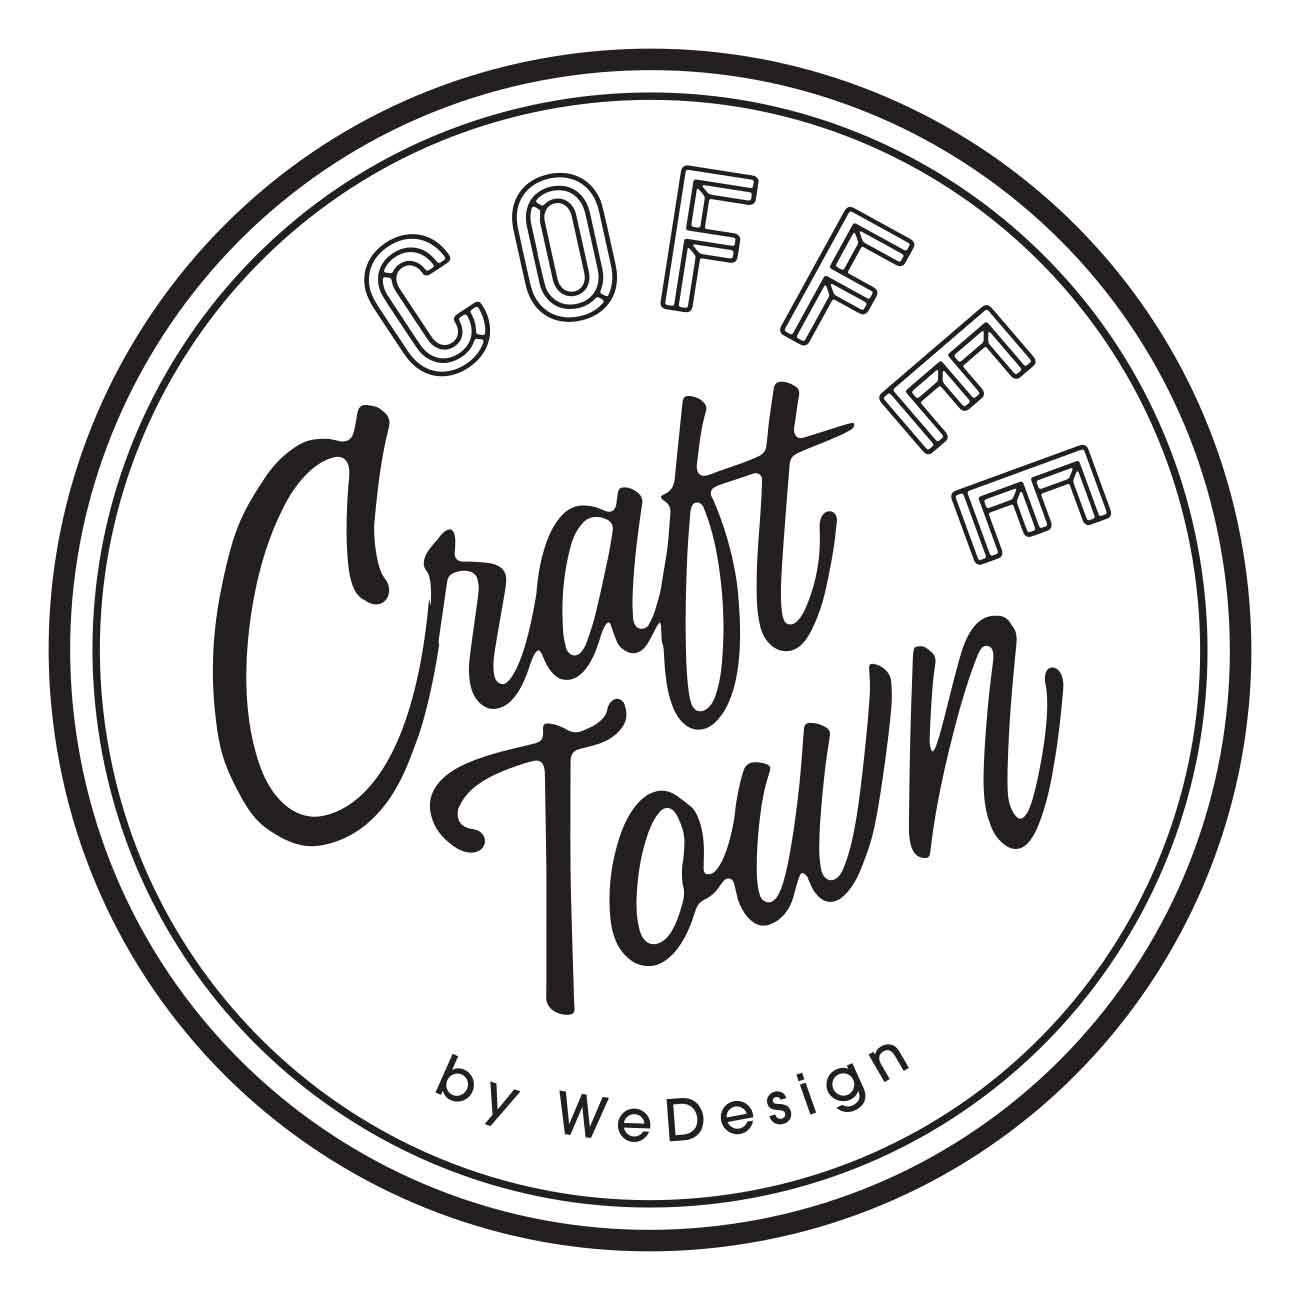 Coffee Craft Town